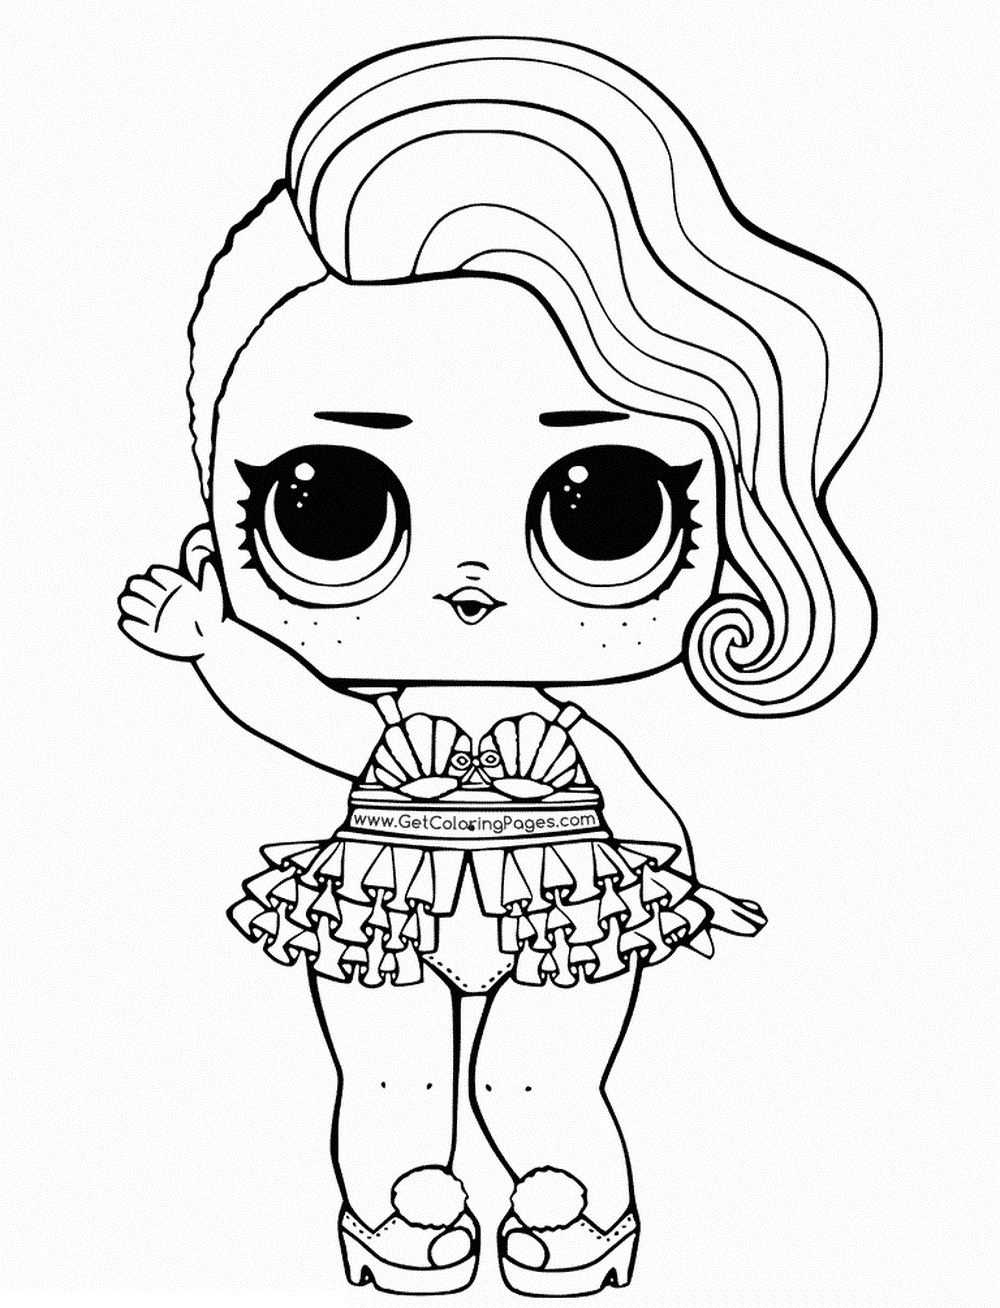 coloring picture lol lol doll glitter queen coloring page free printable lol coloring picture